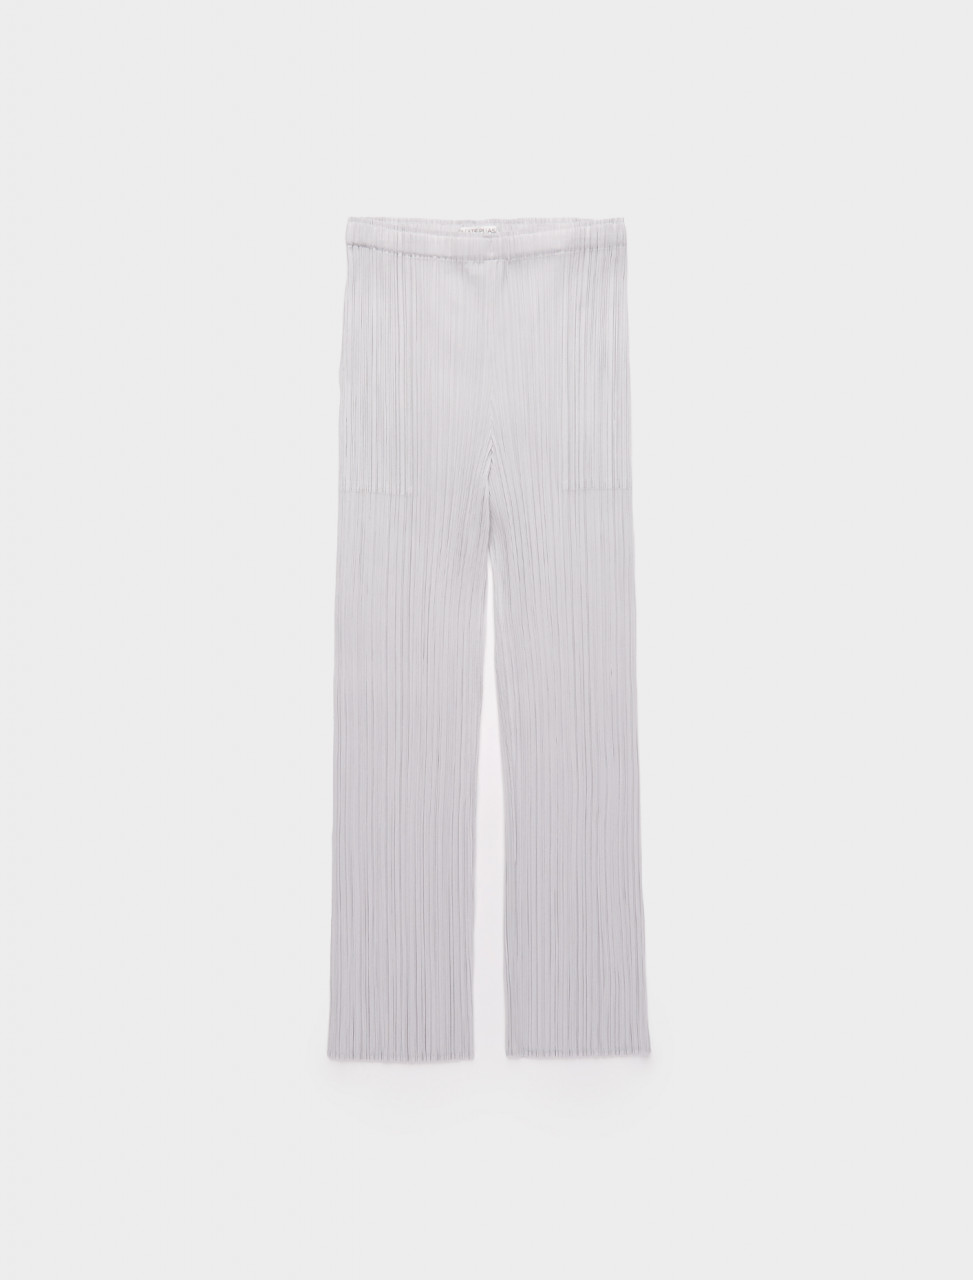 286-PP08JF111-10 ISSEY MIYAKE PLEATS PLEASE TAPERED CROPPED TROUSERS LIGHT GREY